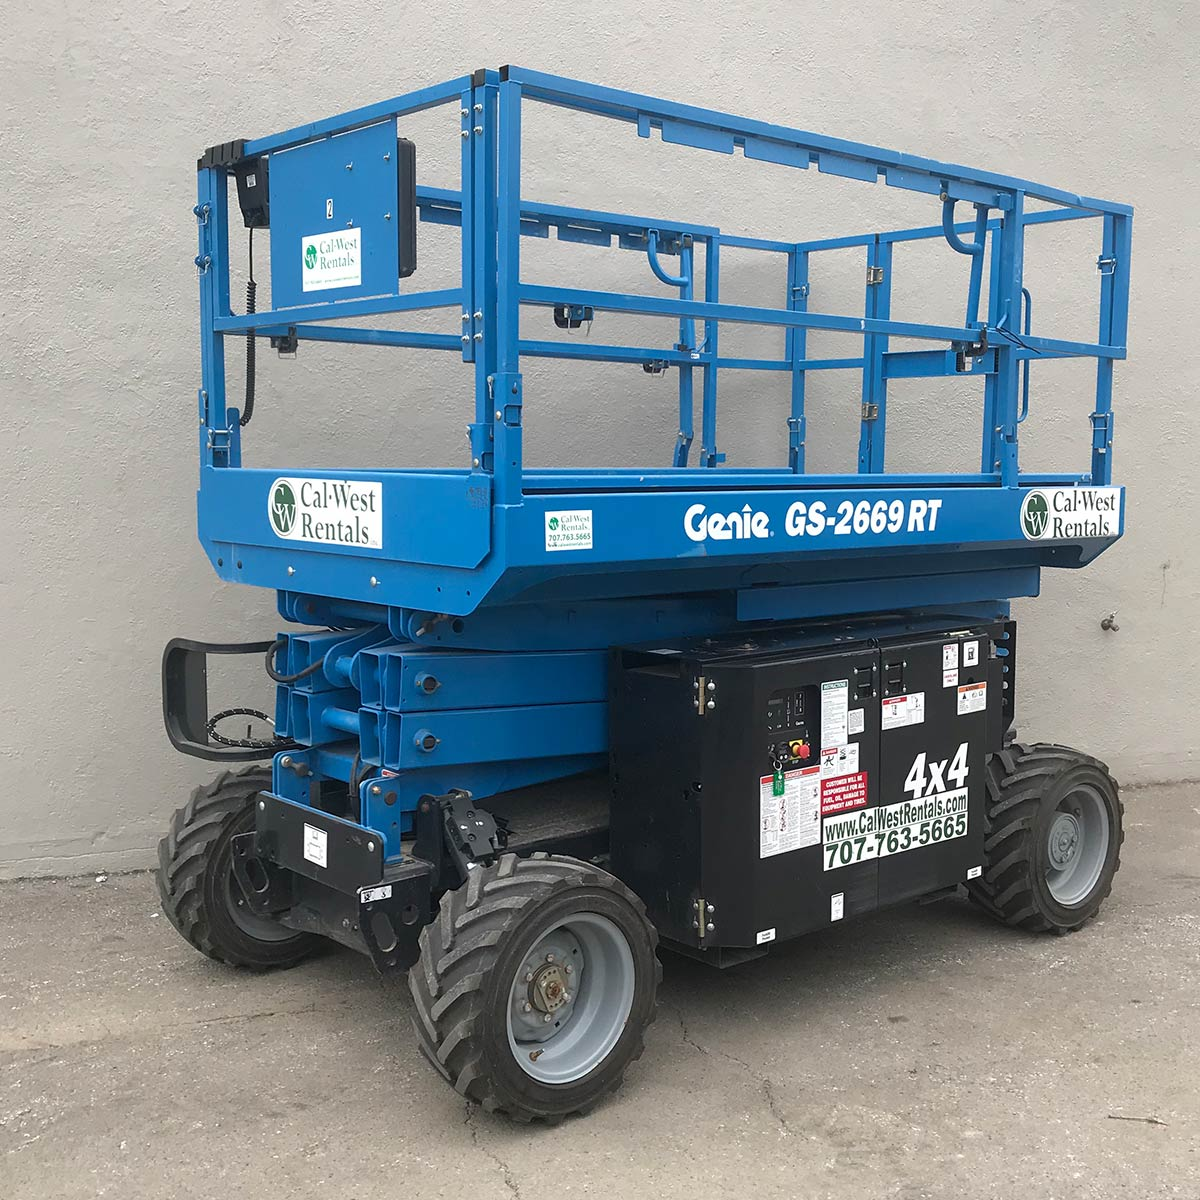 Scissor Lift Rough Terrain 26 Cal West Rentals